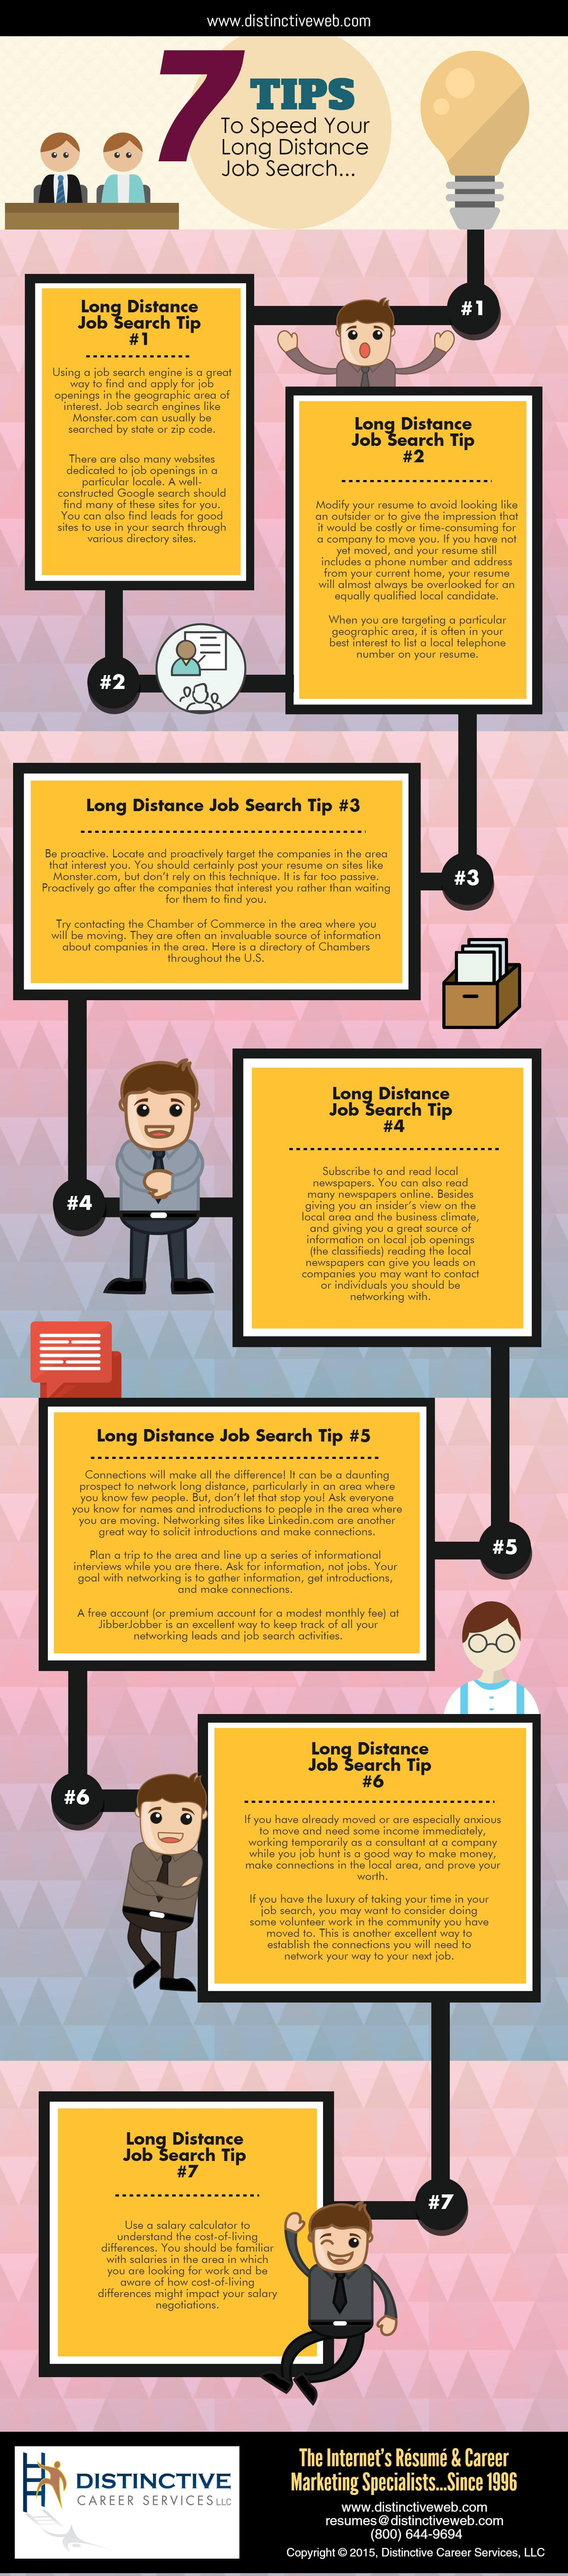 7 Tips To Speed Your Long Distance Job Search